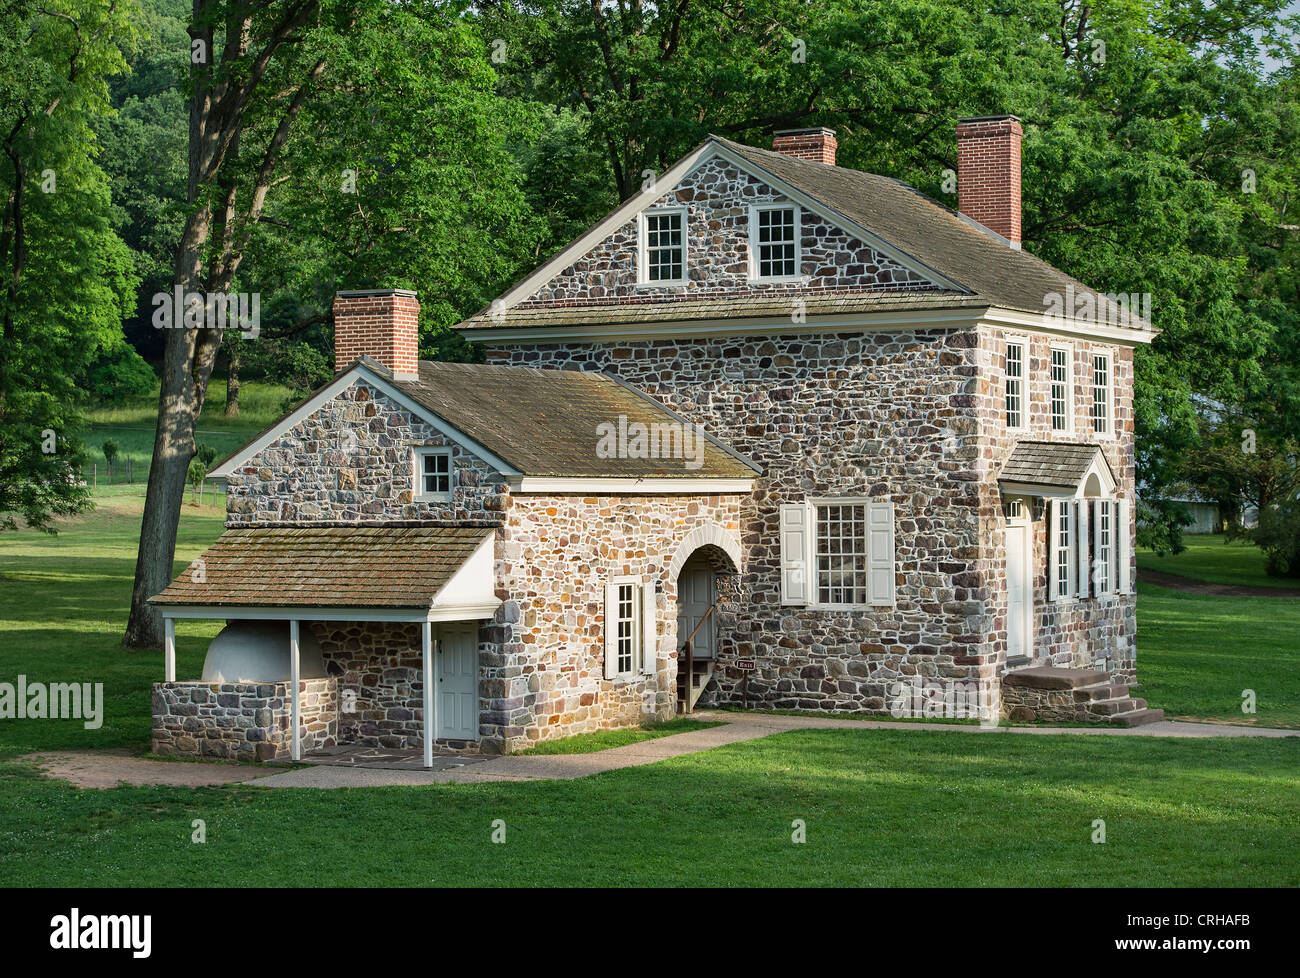 Washington's Headquarters at Valley Forge, Pennsylvania, USA - Stock Image